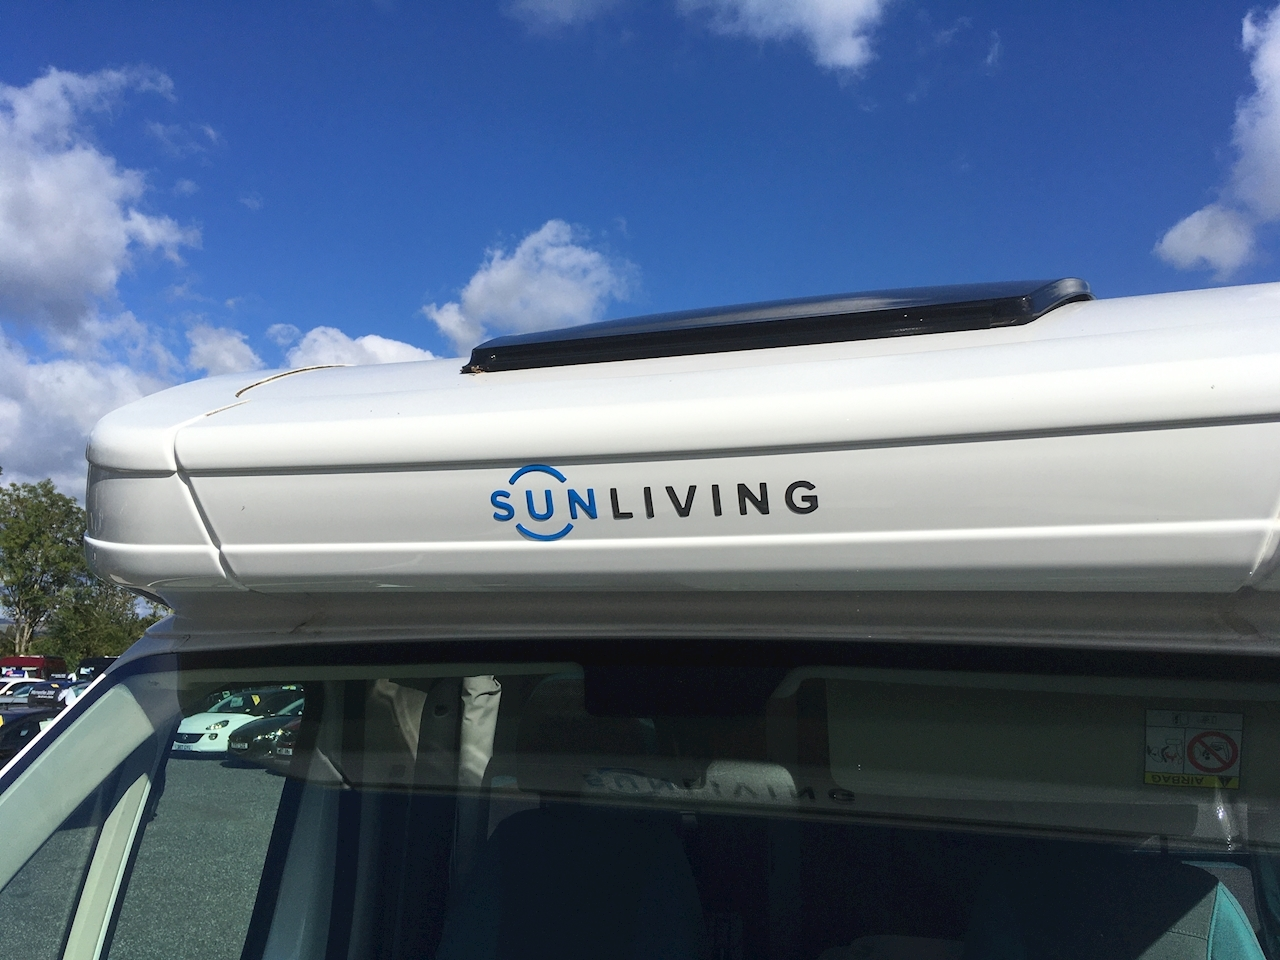 Adria Sun Living By Adria S70SP (Brand new in stock) Motorhome 2.3 Manual Diesel